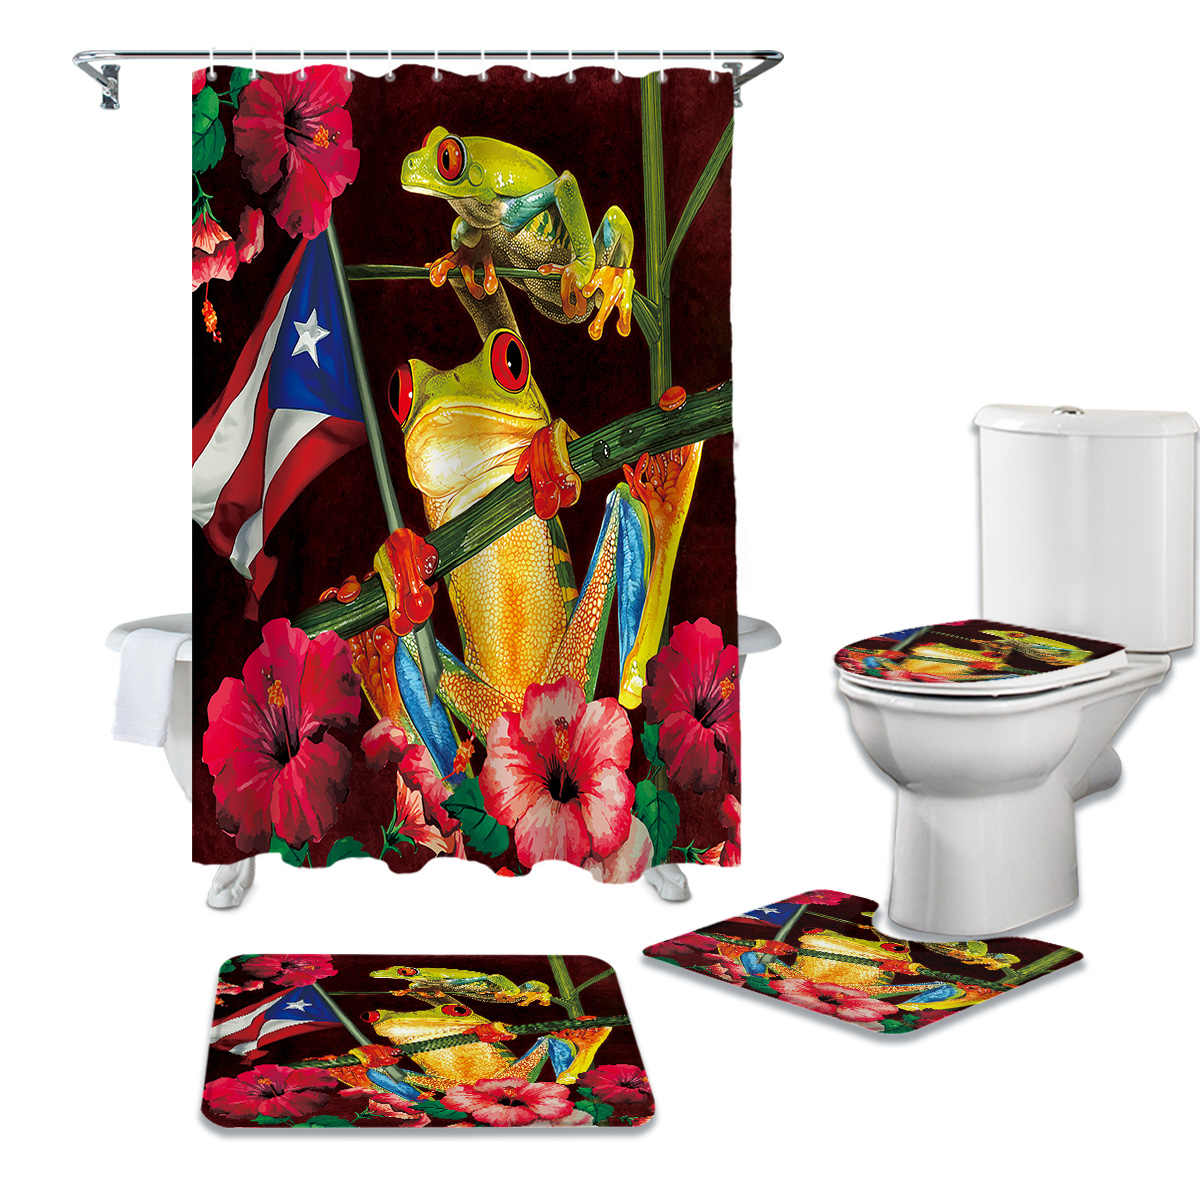 hibiscus tree trunk puerto rico flag frog shower curtain sets non slip rugs toilet lid cover and bath mat bathroom curtains set